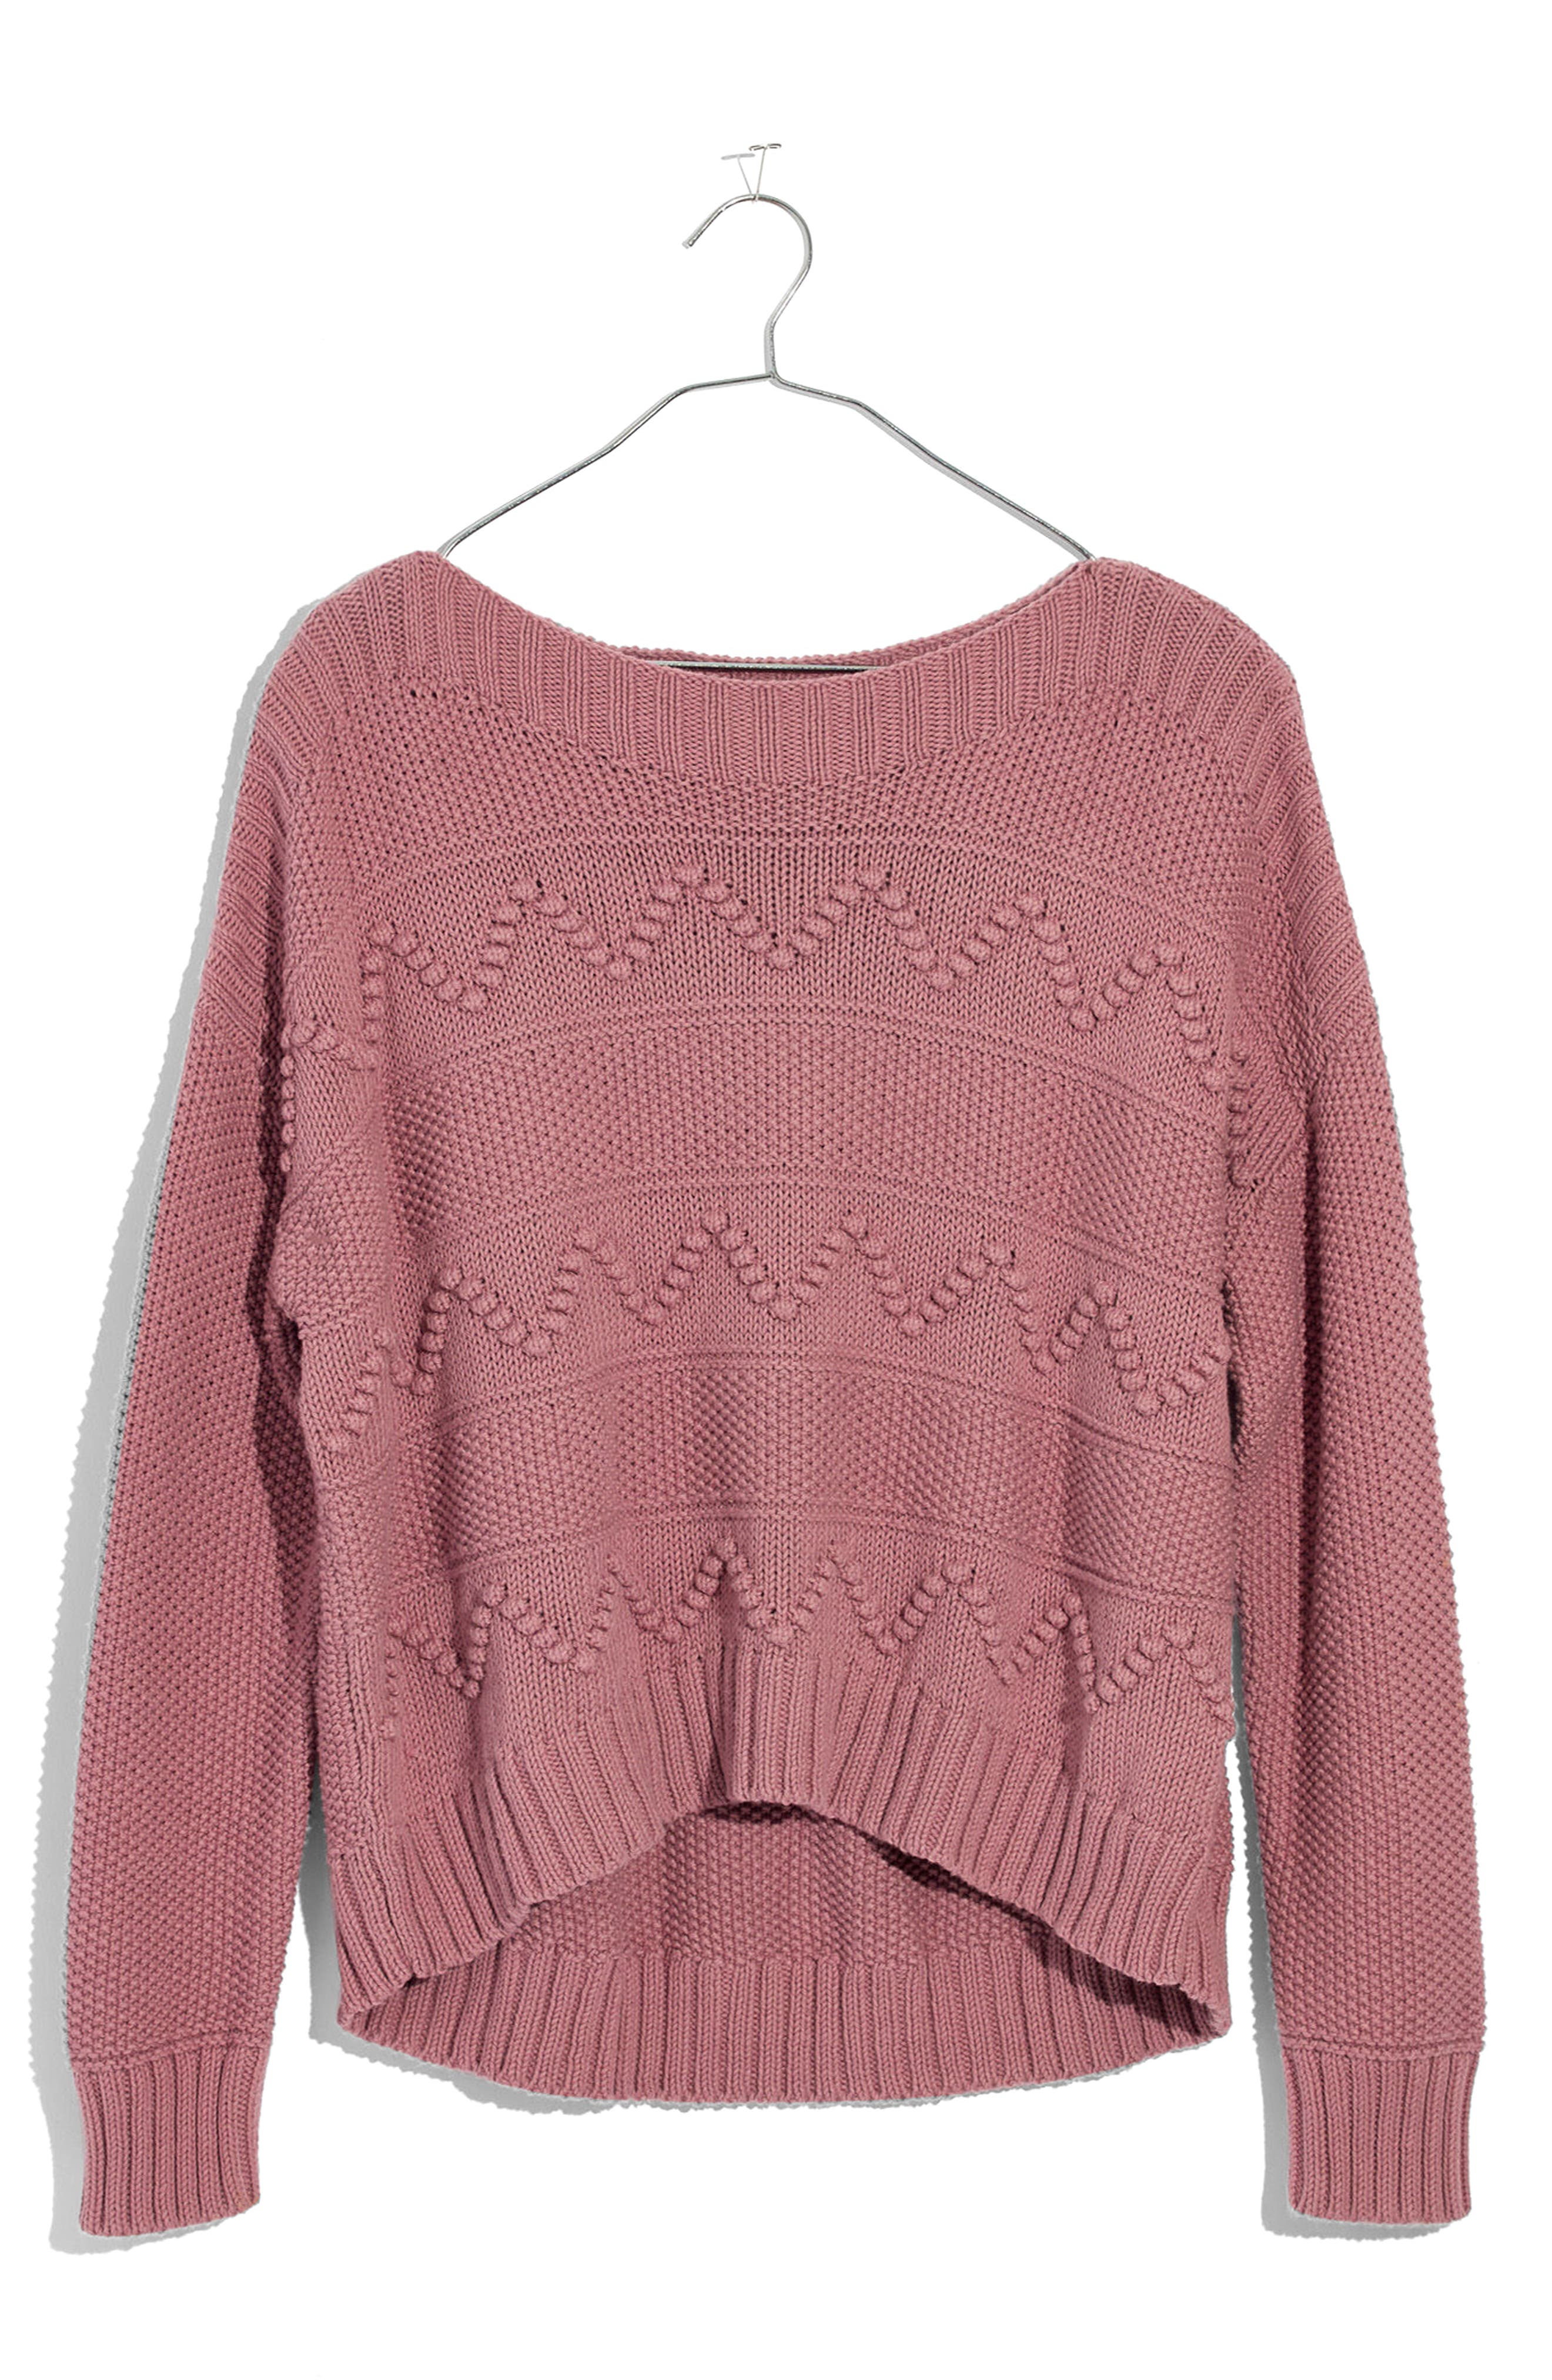 Zigzag Stitch Pullover Sweater,                             Alternate thumbnail 4, color,                             650